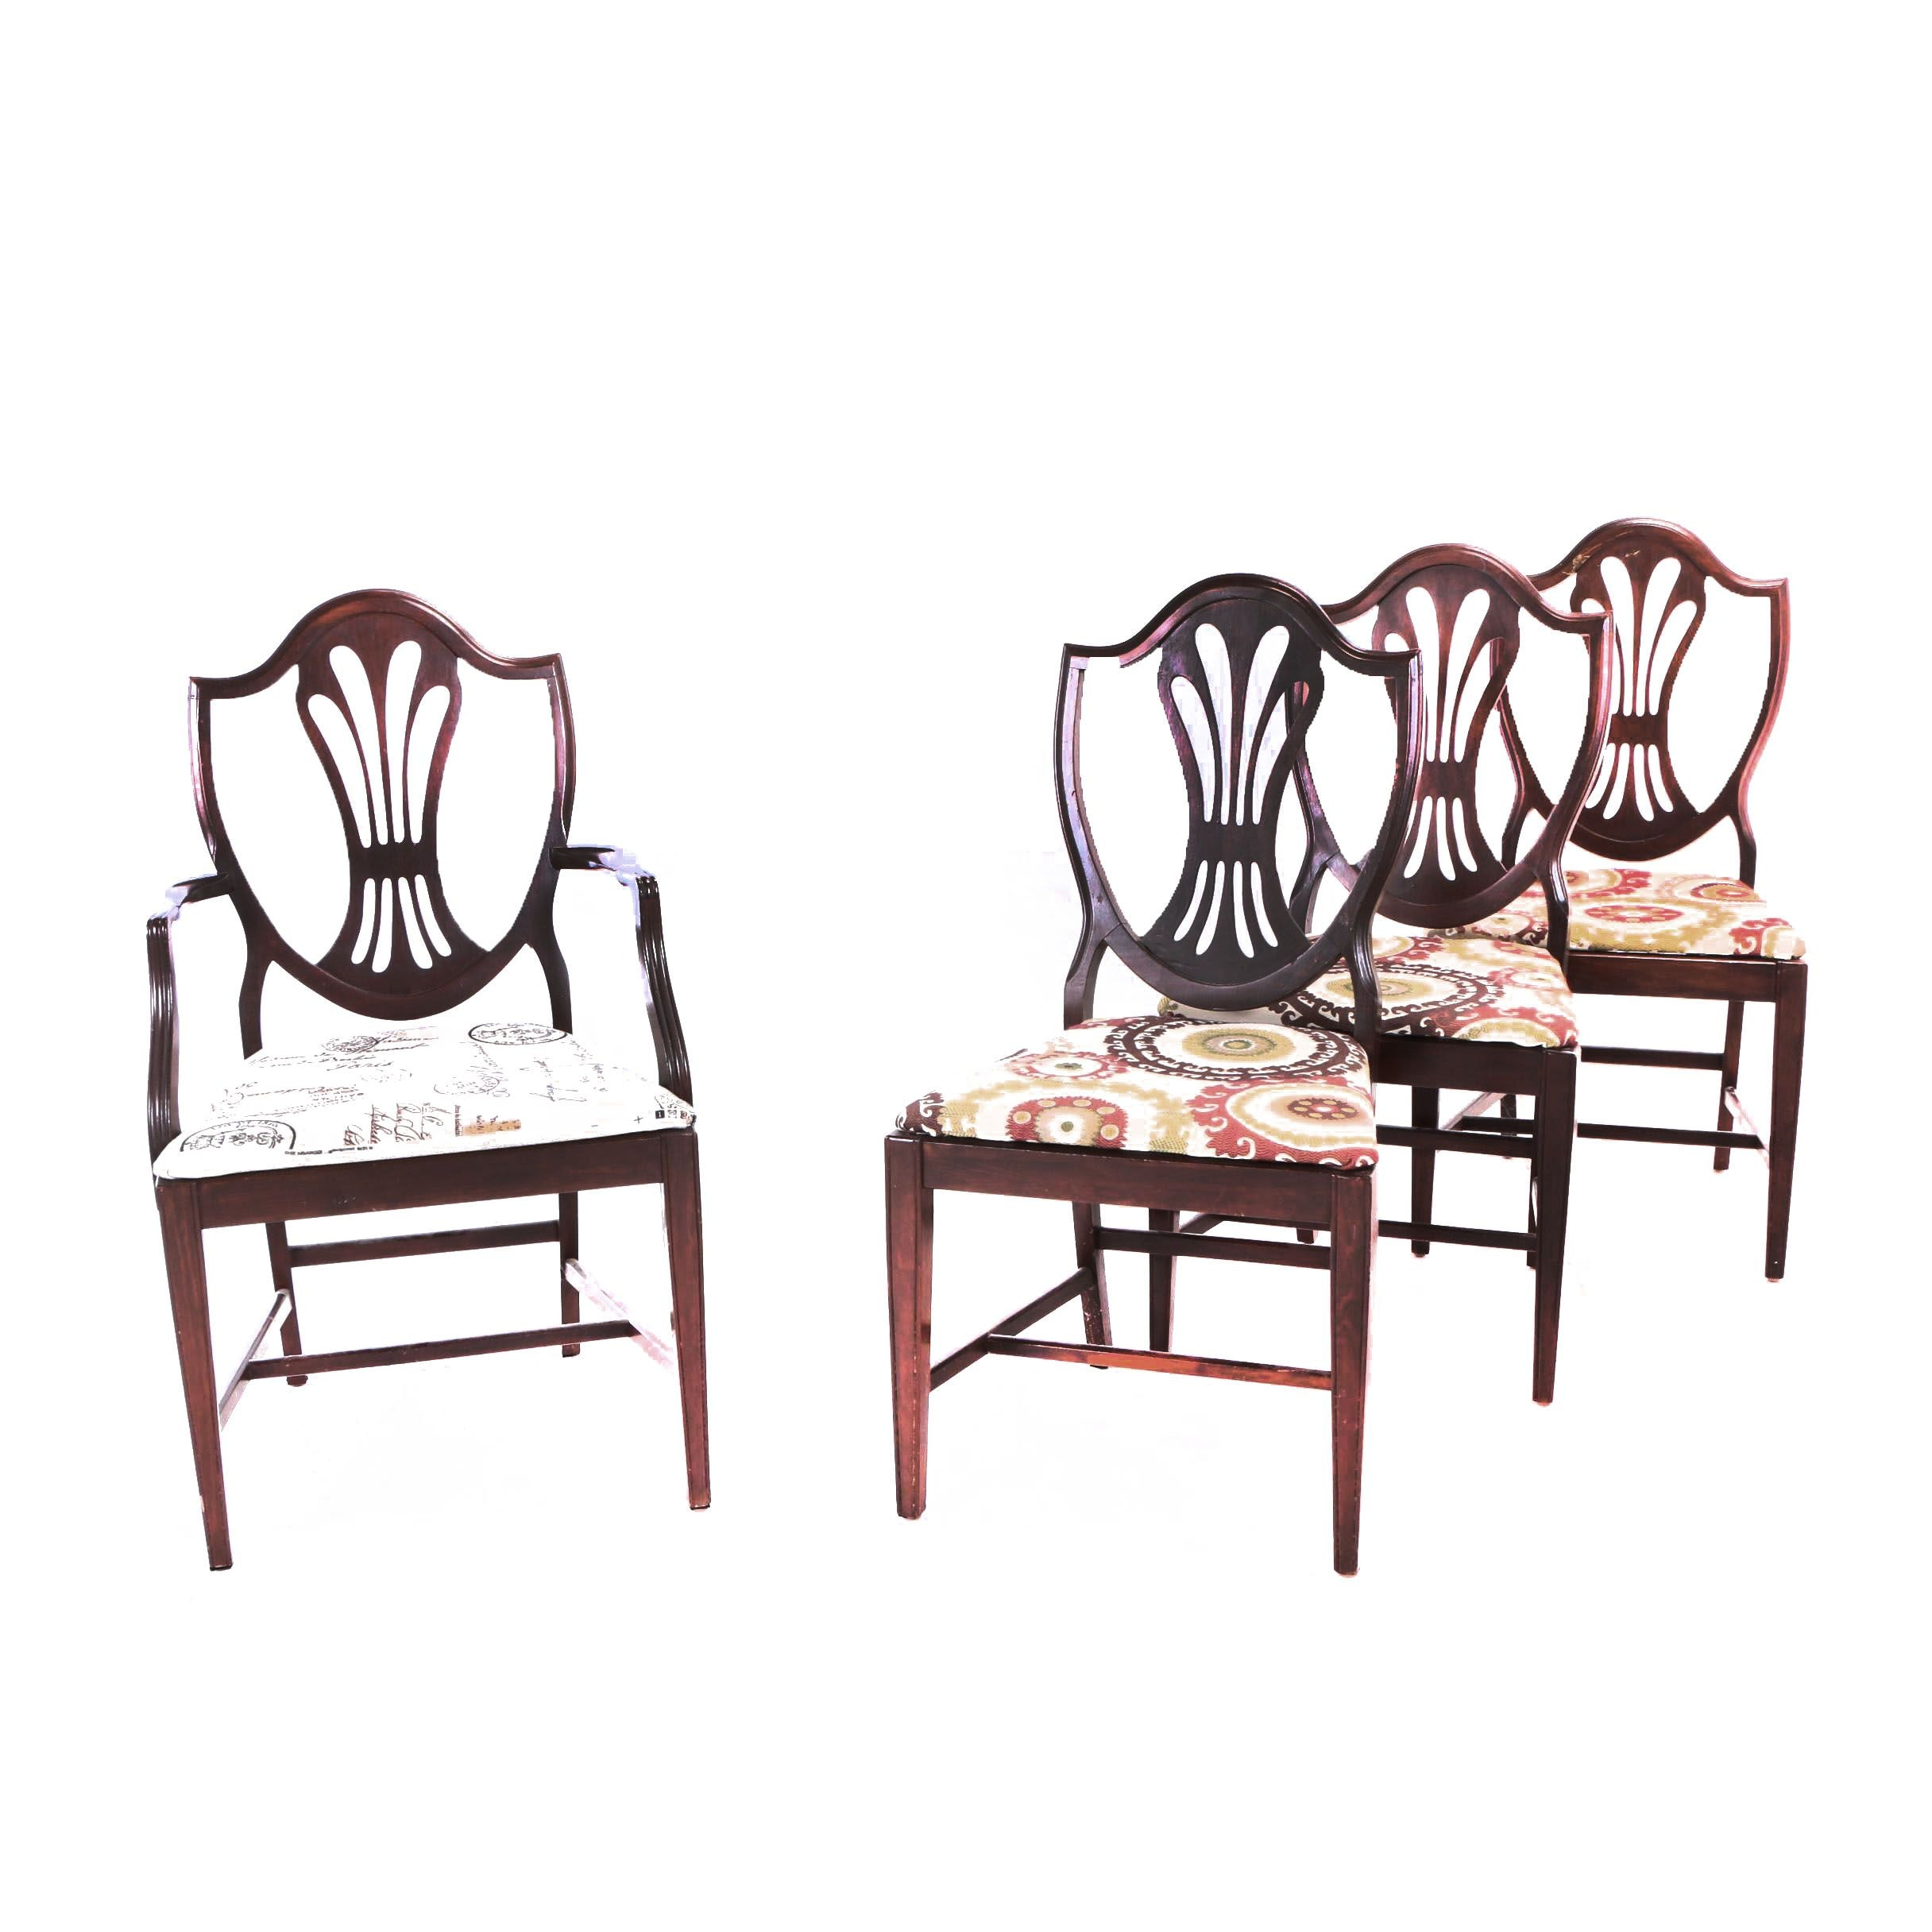 Four Federal Style Mahogany and Mahogany-Stained Dining Chairs, 20th Century